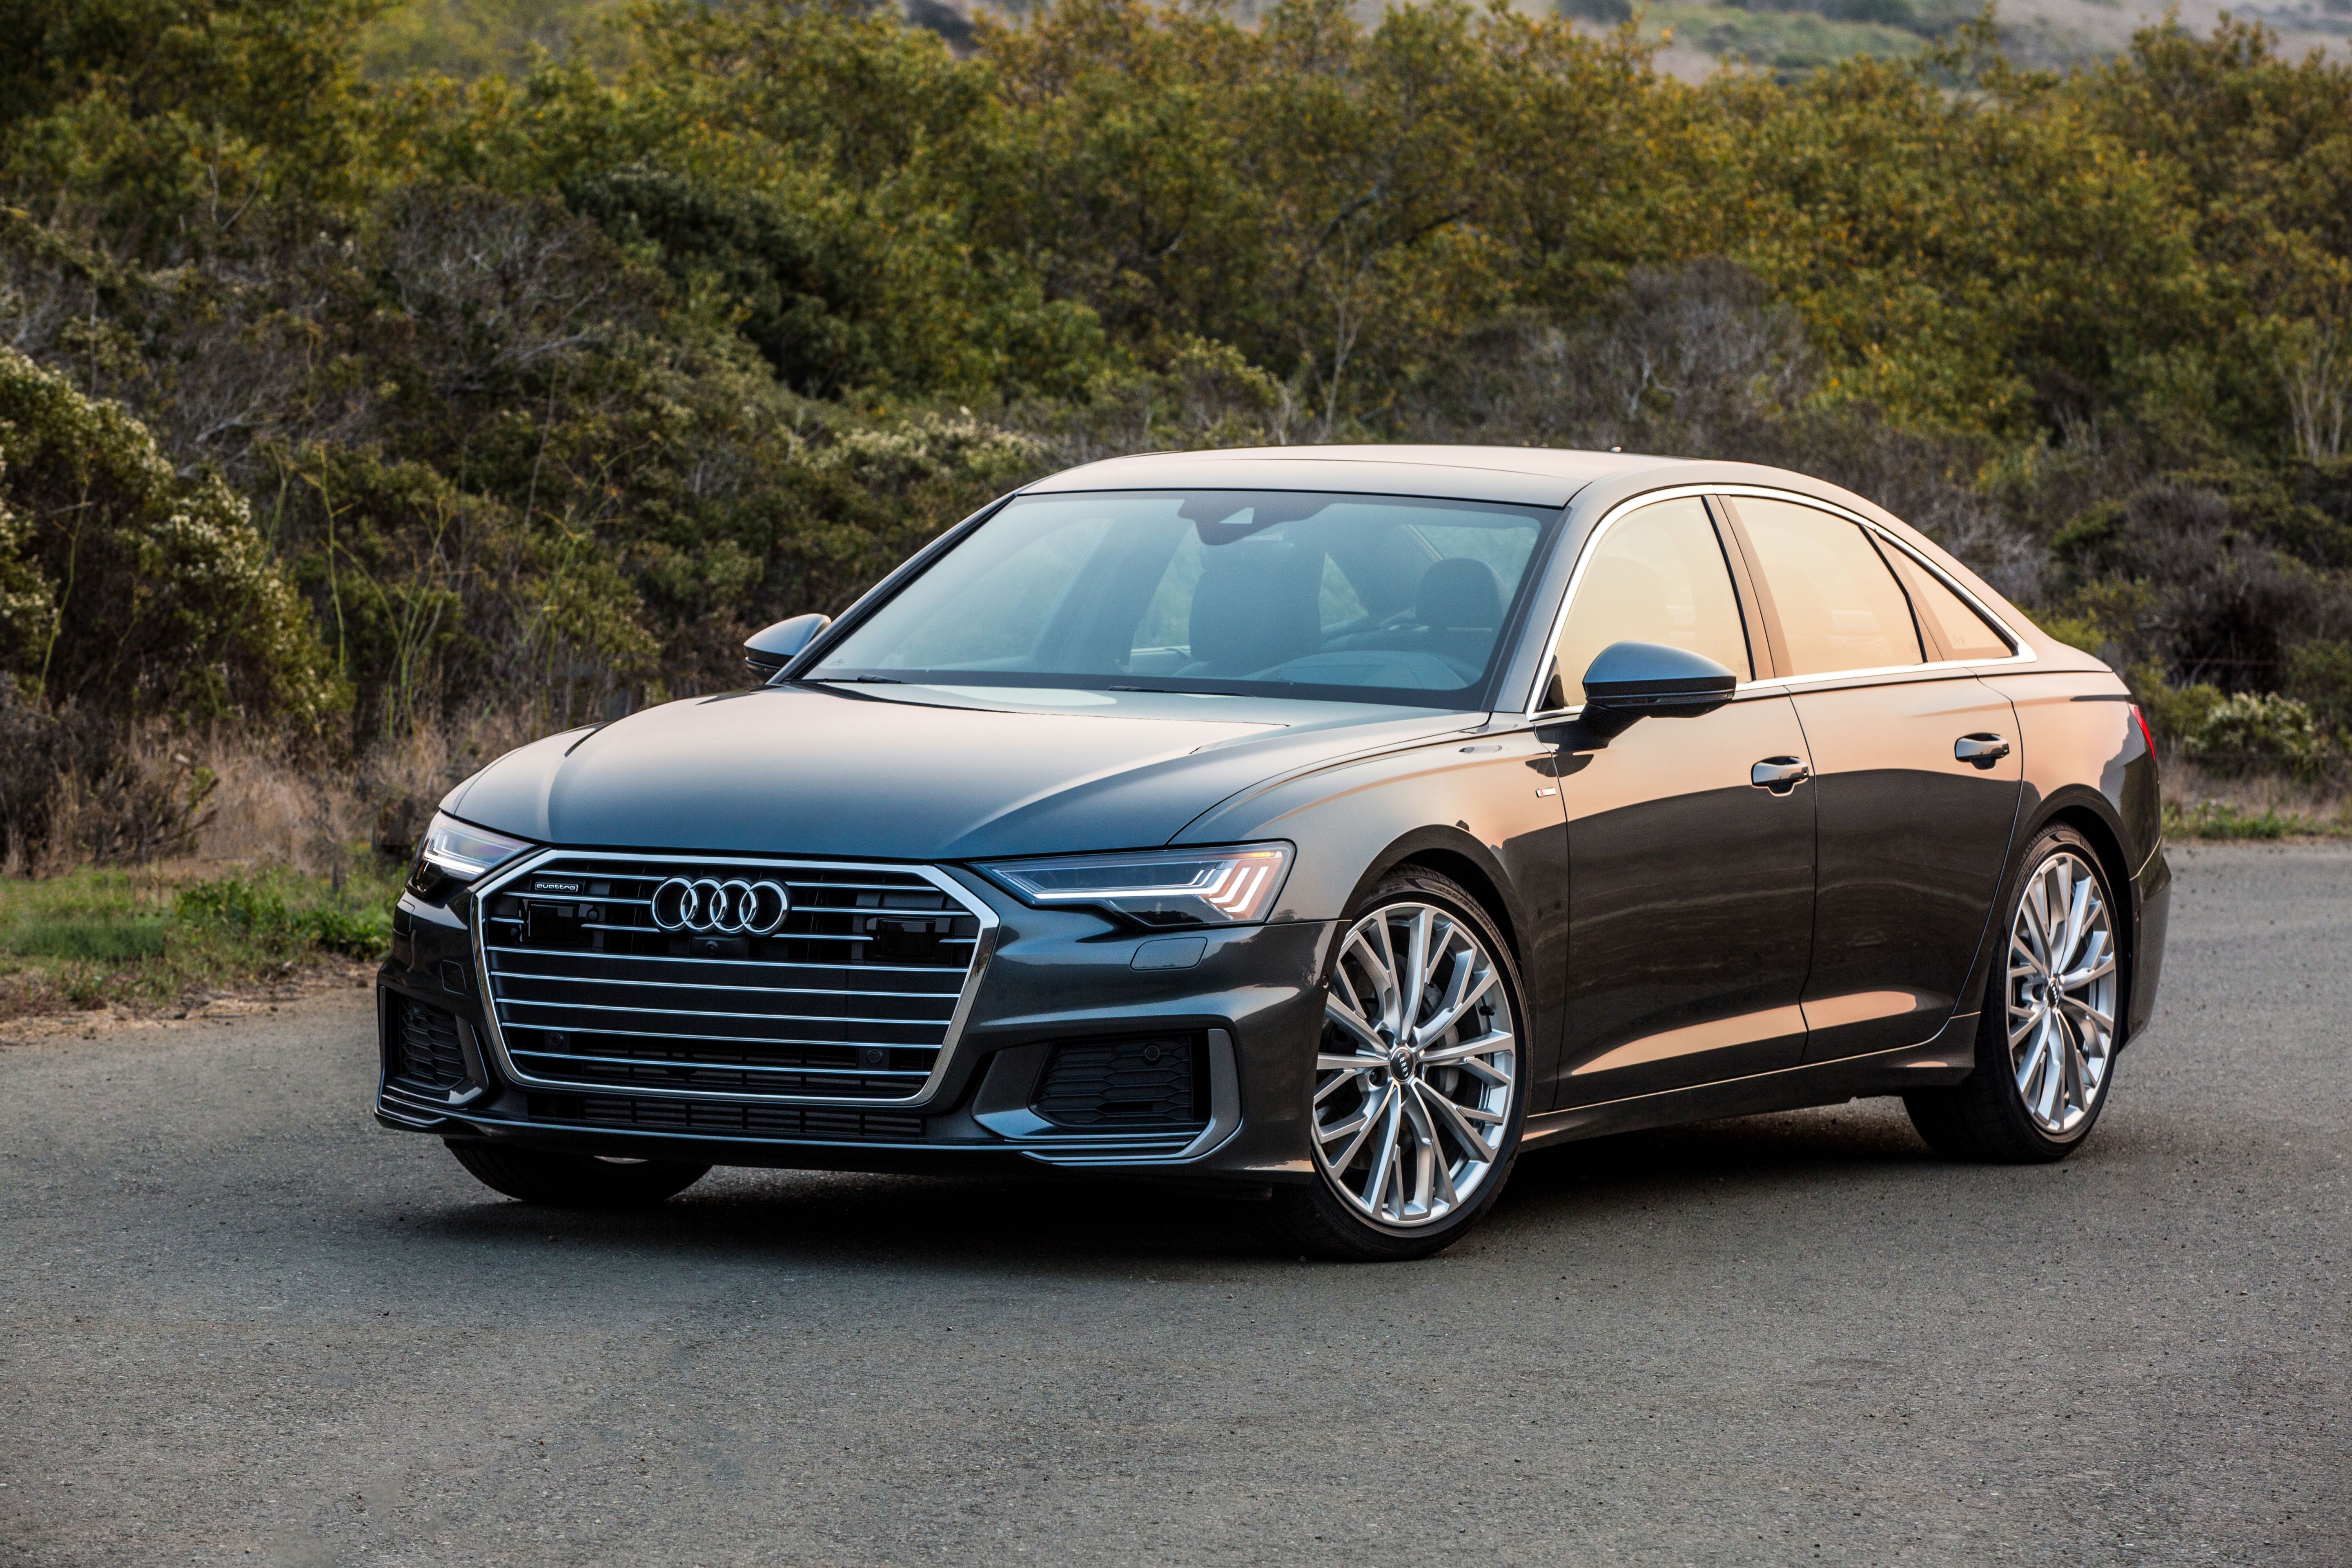 8 Advantages Of Audi A8 Cars For Sale And How You Can Make Full Use Of It